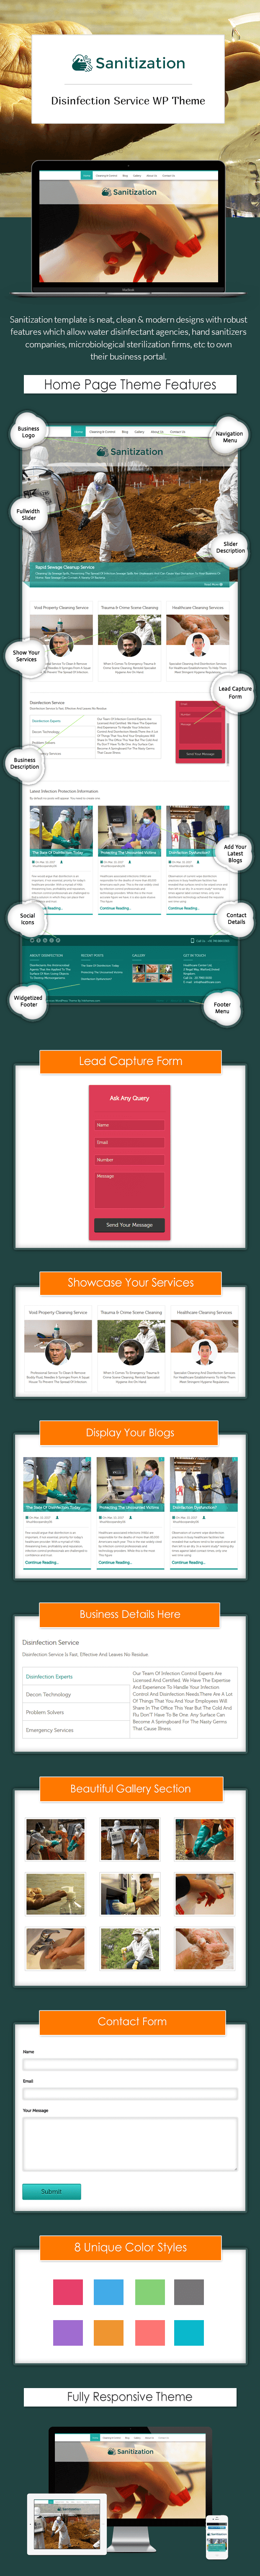 Disinfection Service WordPress Theme Sales